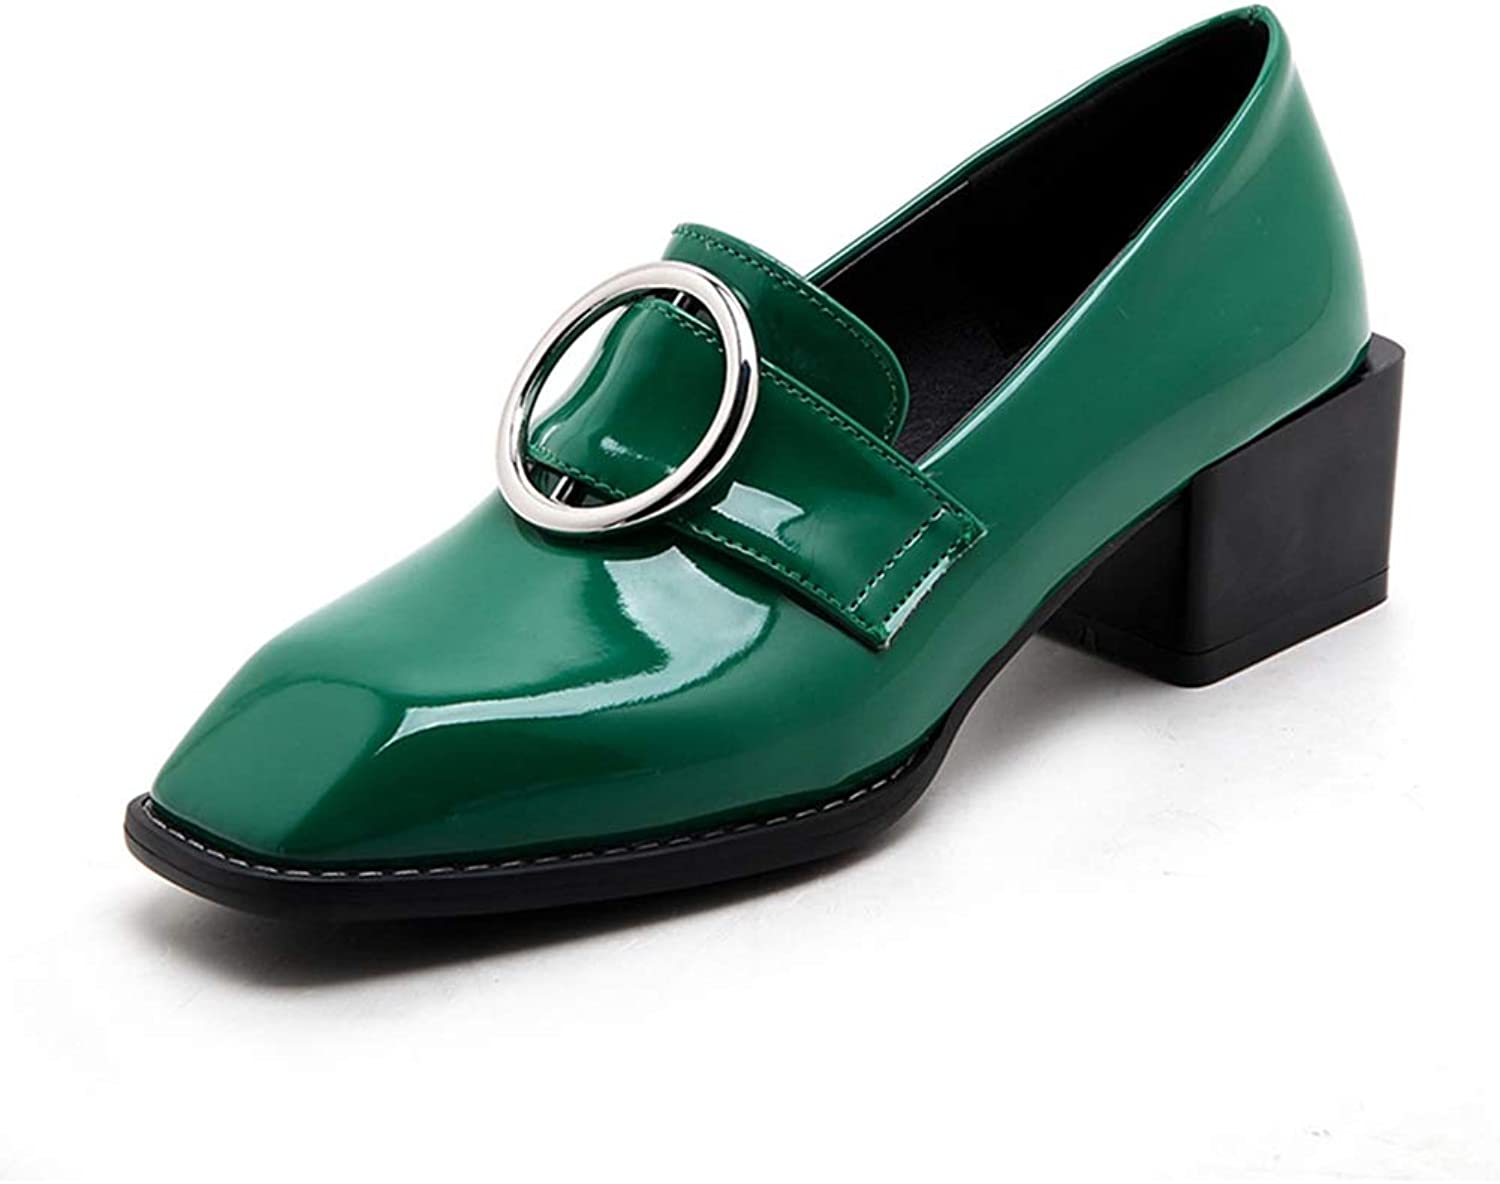 GIY Women's Square Toe Buckle Oxford shoes Patent Leather Slip On Mid Heel Dress Oxfords Loafer Pumps